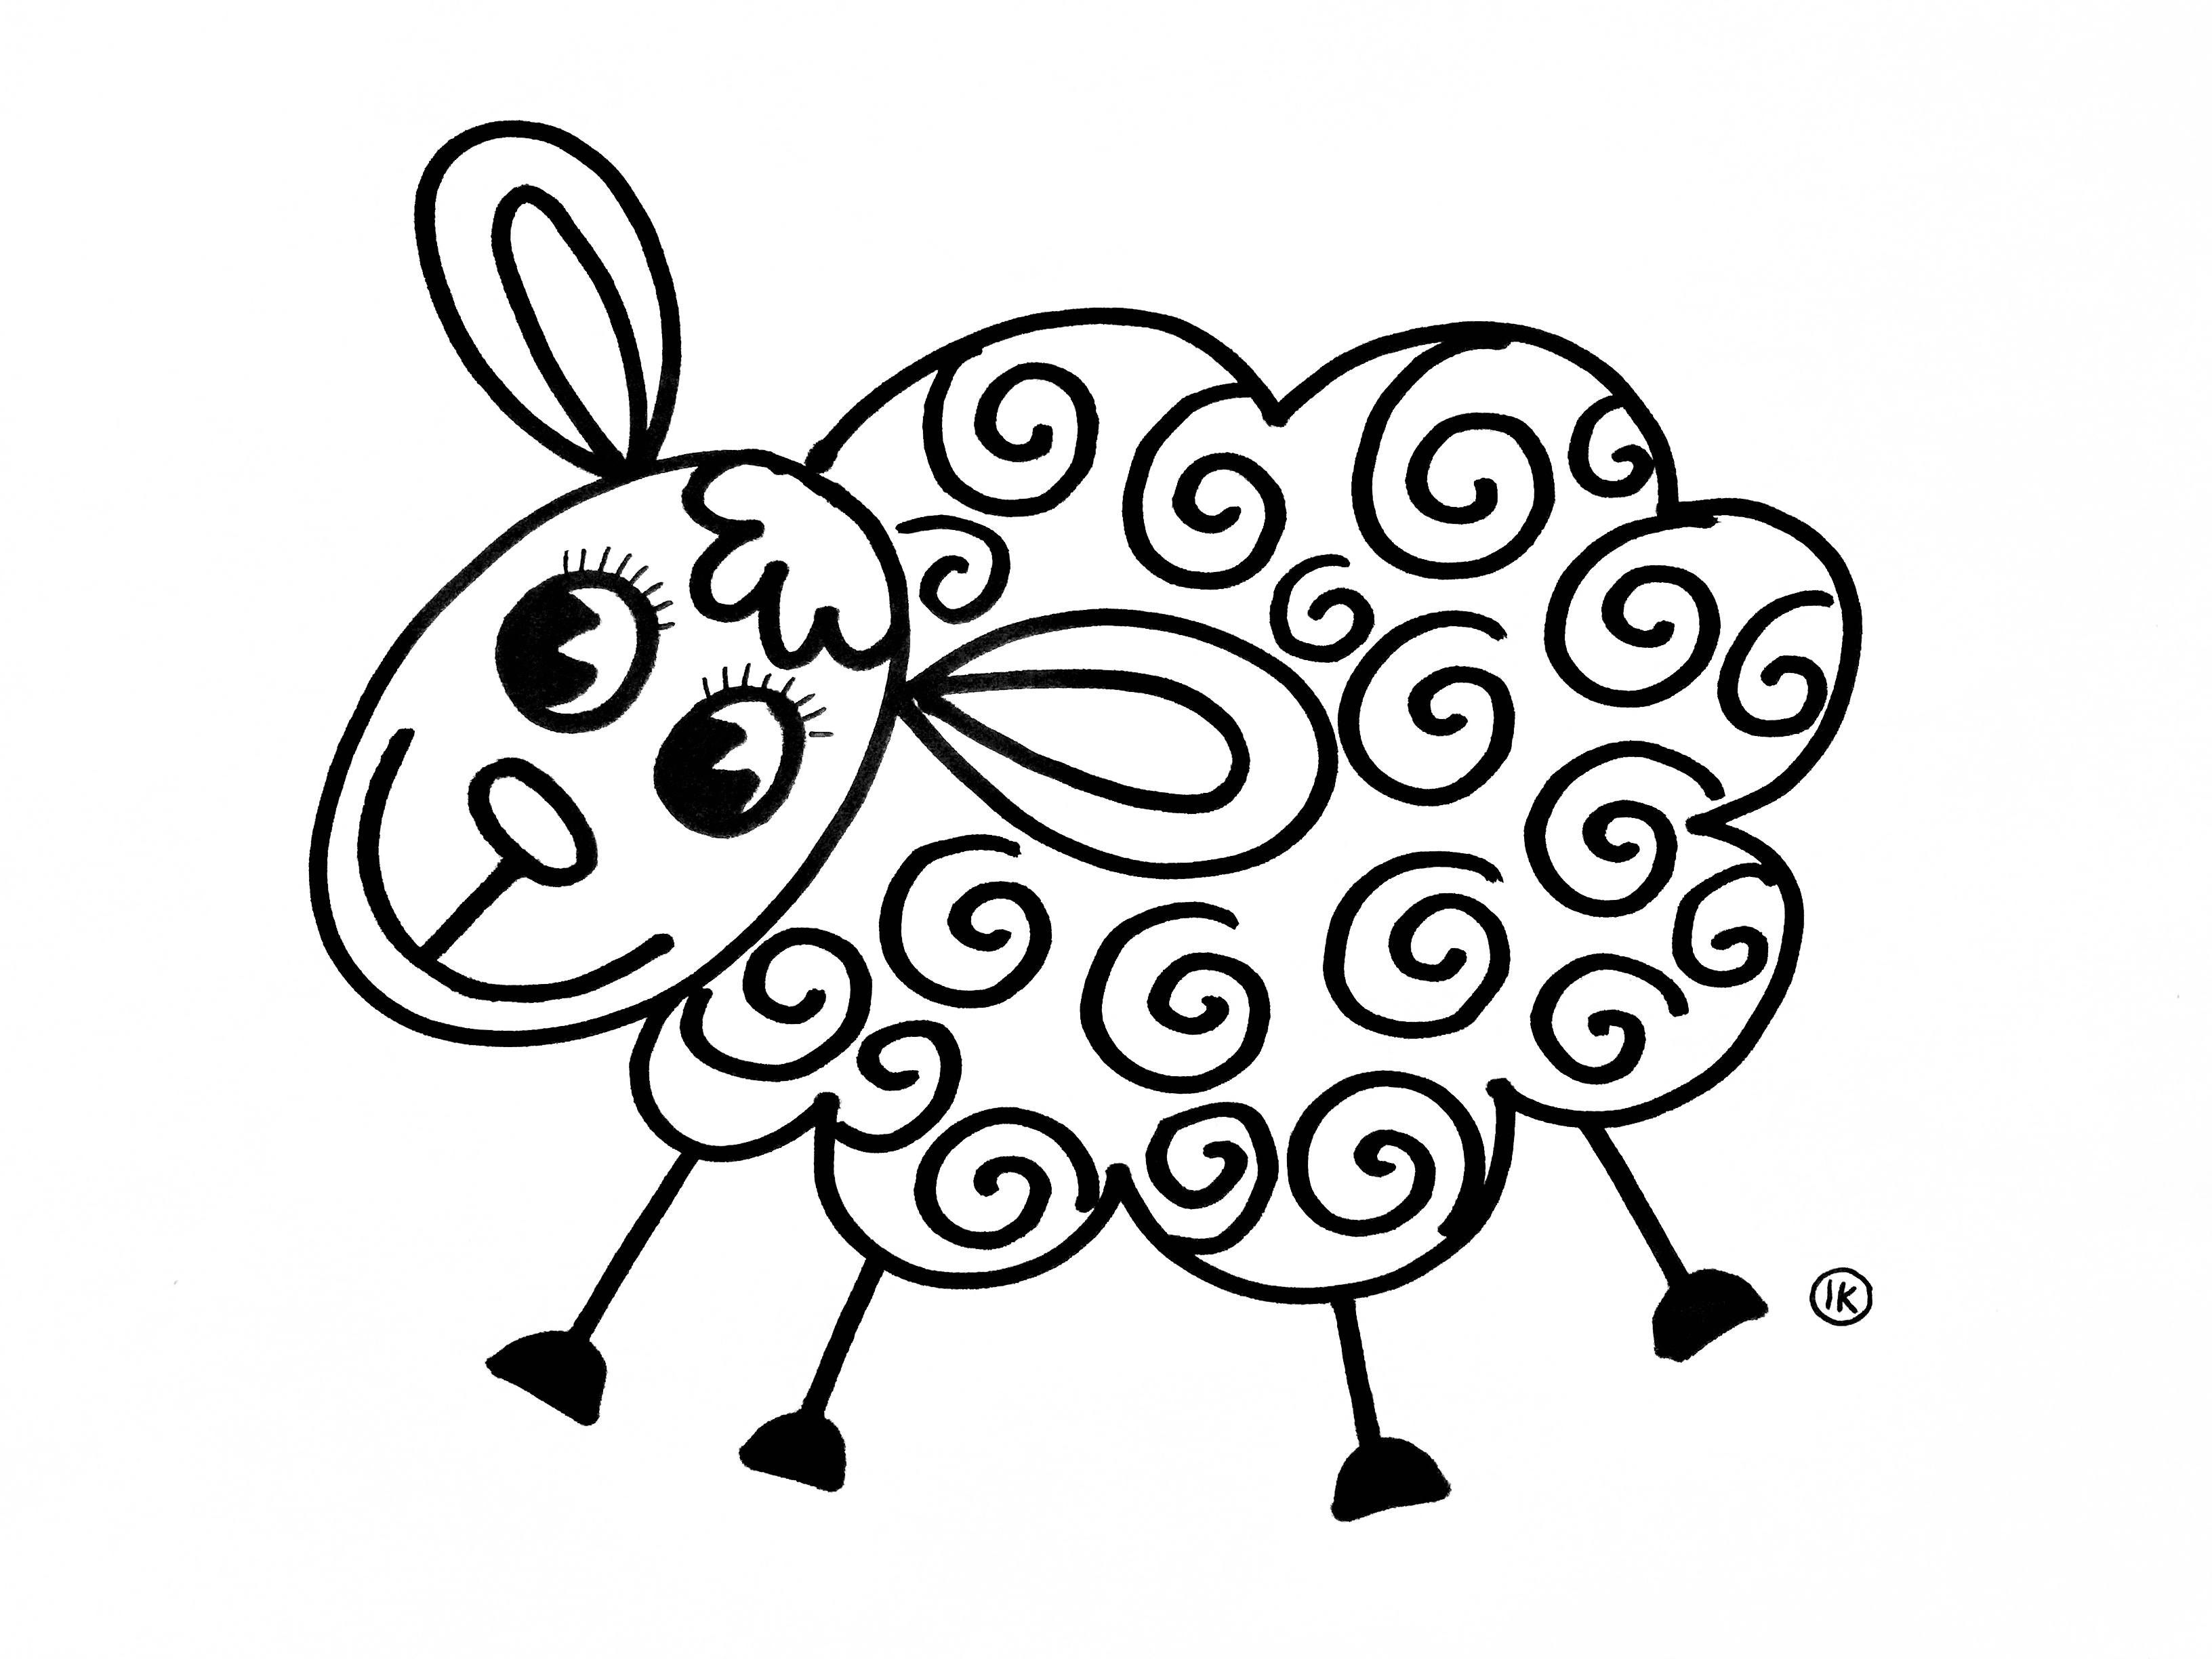 Coloring Sheep Spring Tinkering Creative Coloringpages Coloringpage De Knutseljuf Ede Easy Drawings Sheep And Lamb Embroidery Patterns